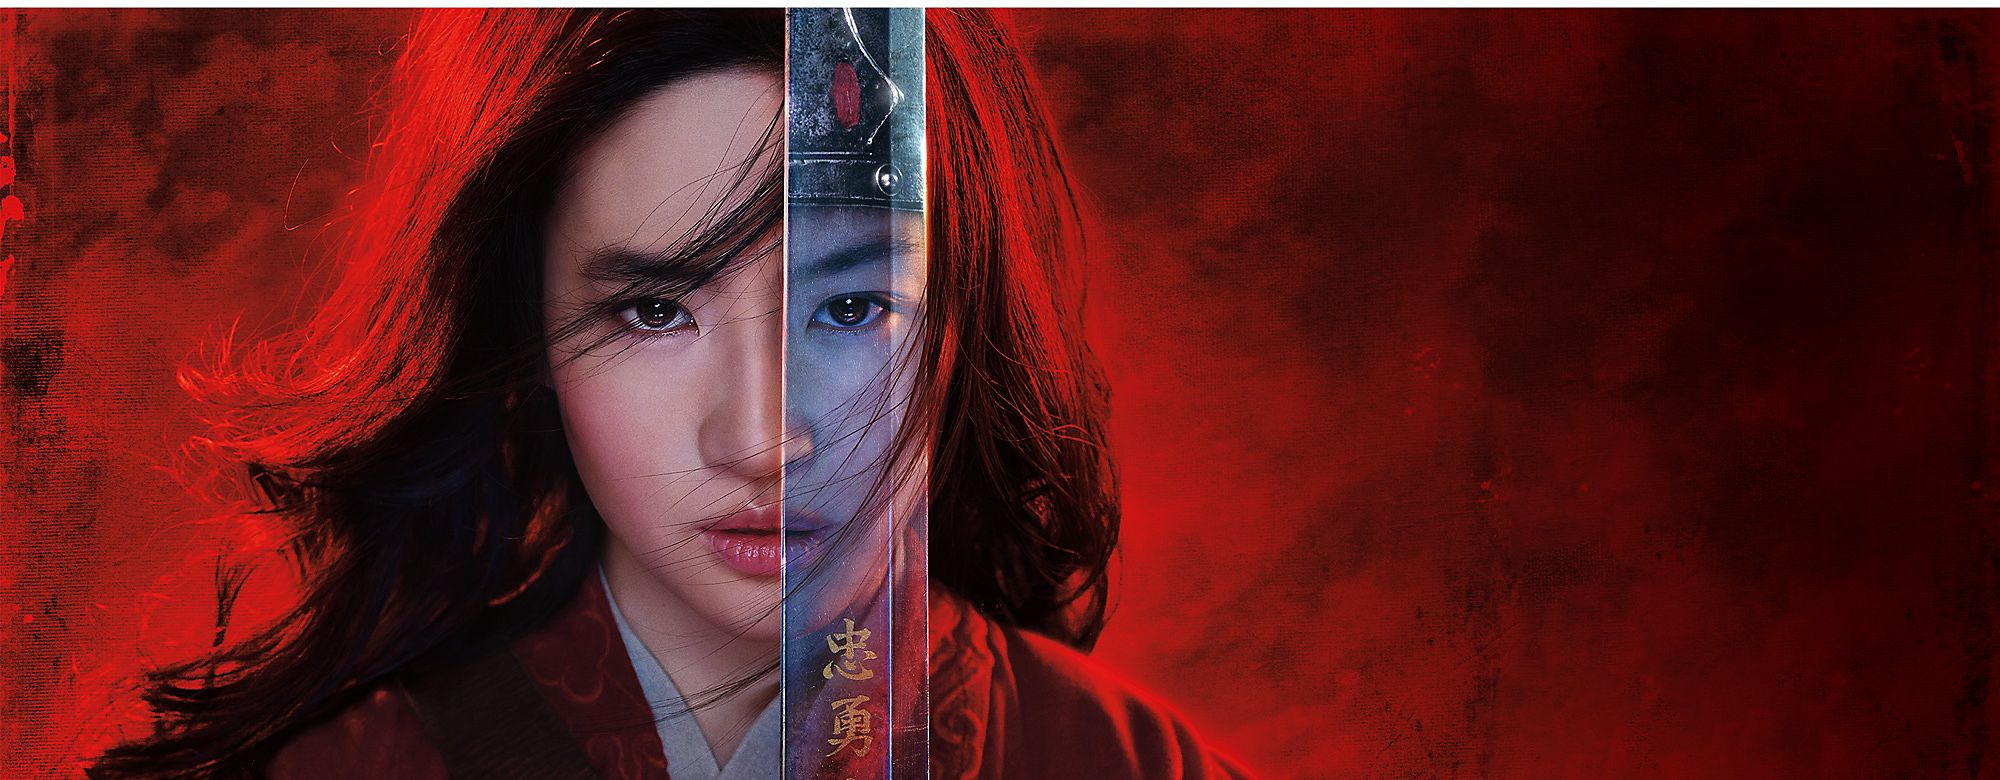 When the Emperor of China declares that one man from every family must volunteer to join the army, Hua Mulan steps up to take the place of her ailing father. Following the spirited young warrior as she sets off to bring honour to her family, the all-new, live action Disney movie tells the story like never before.